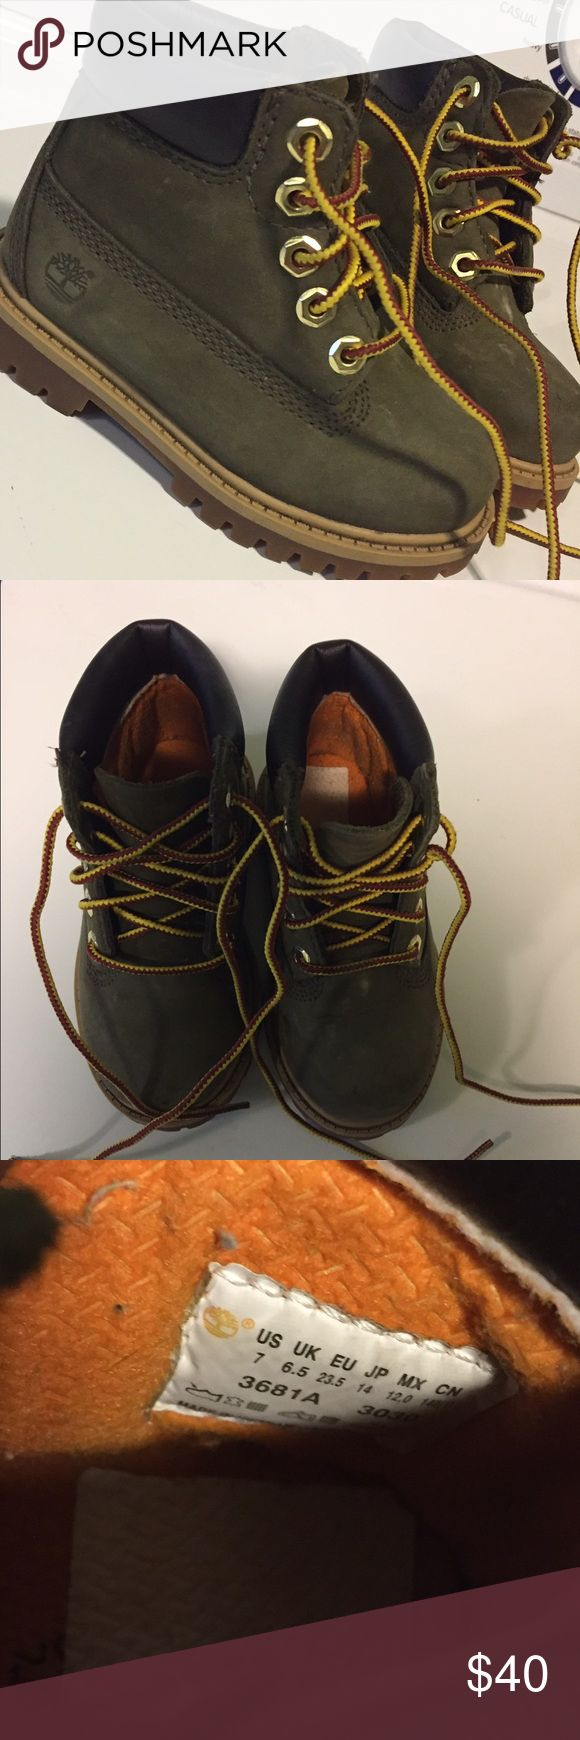 Toddler Winter Boots Olive Green Toddler Boys Timberland Boots size 7! Timberland Shoes Winter & Rain Boots